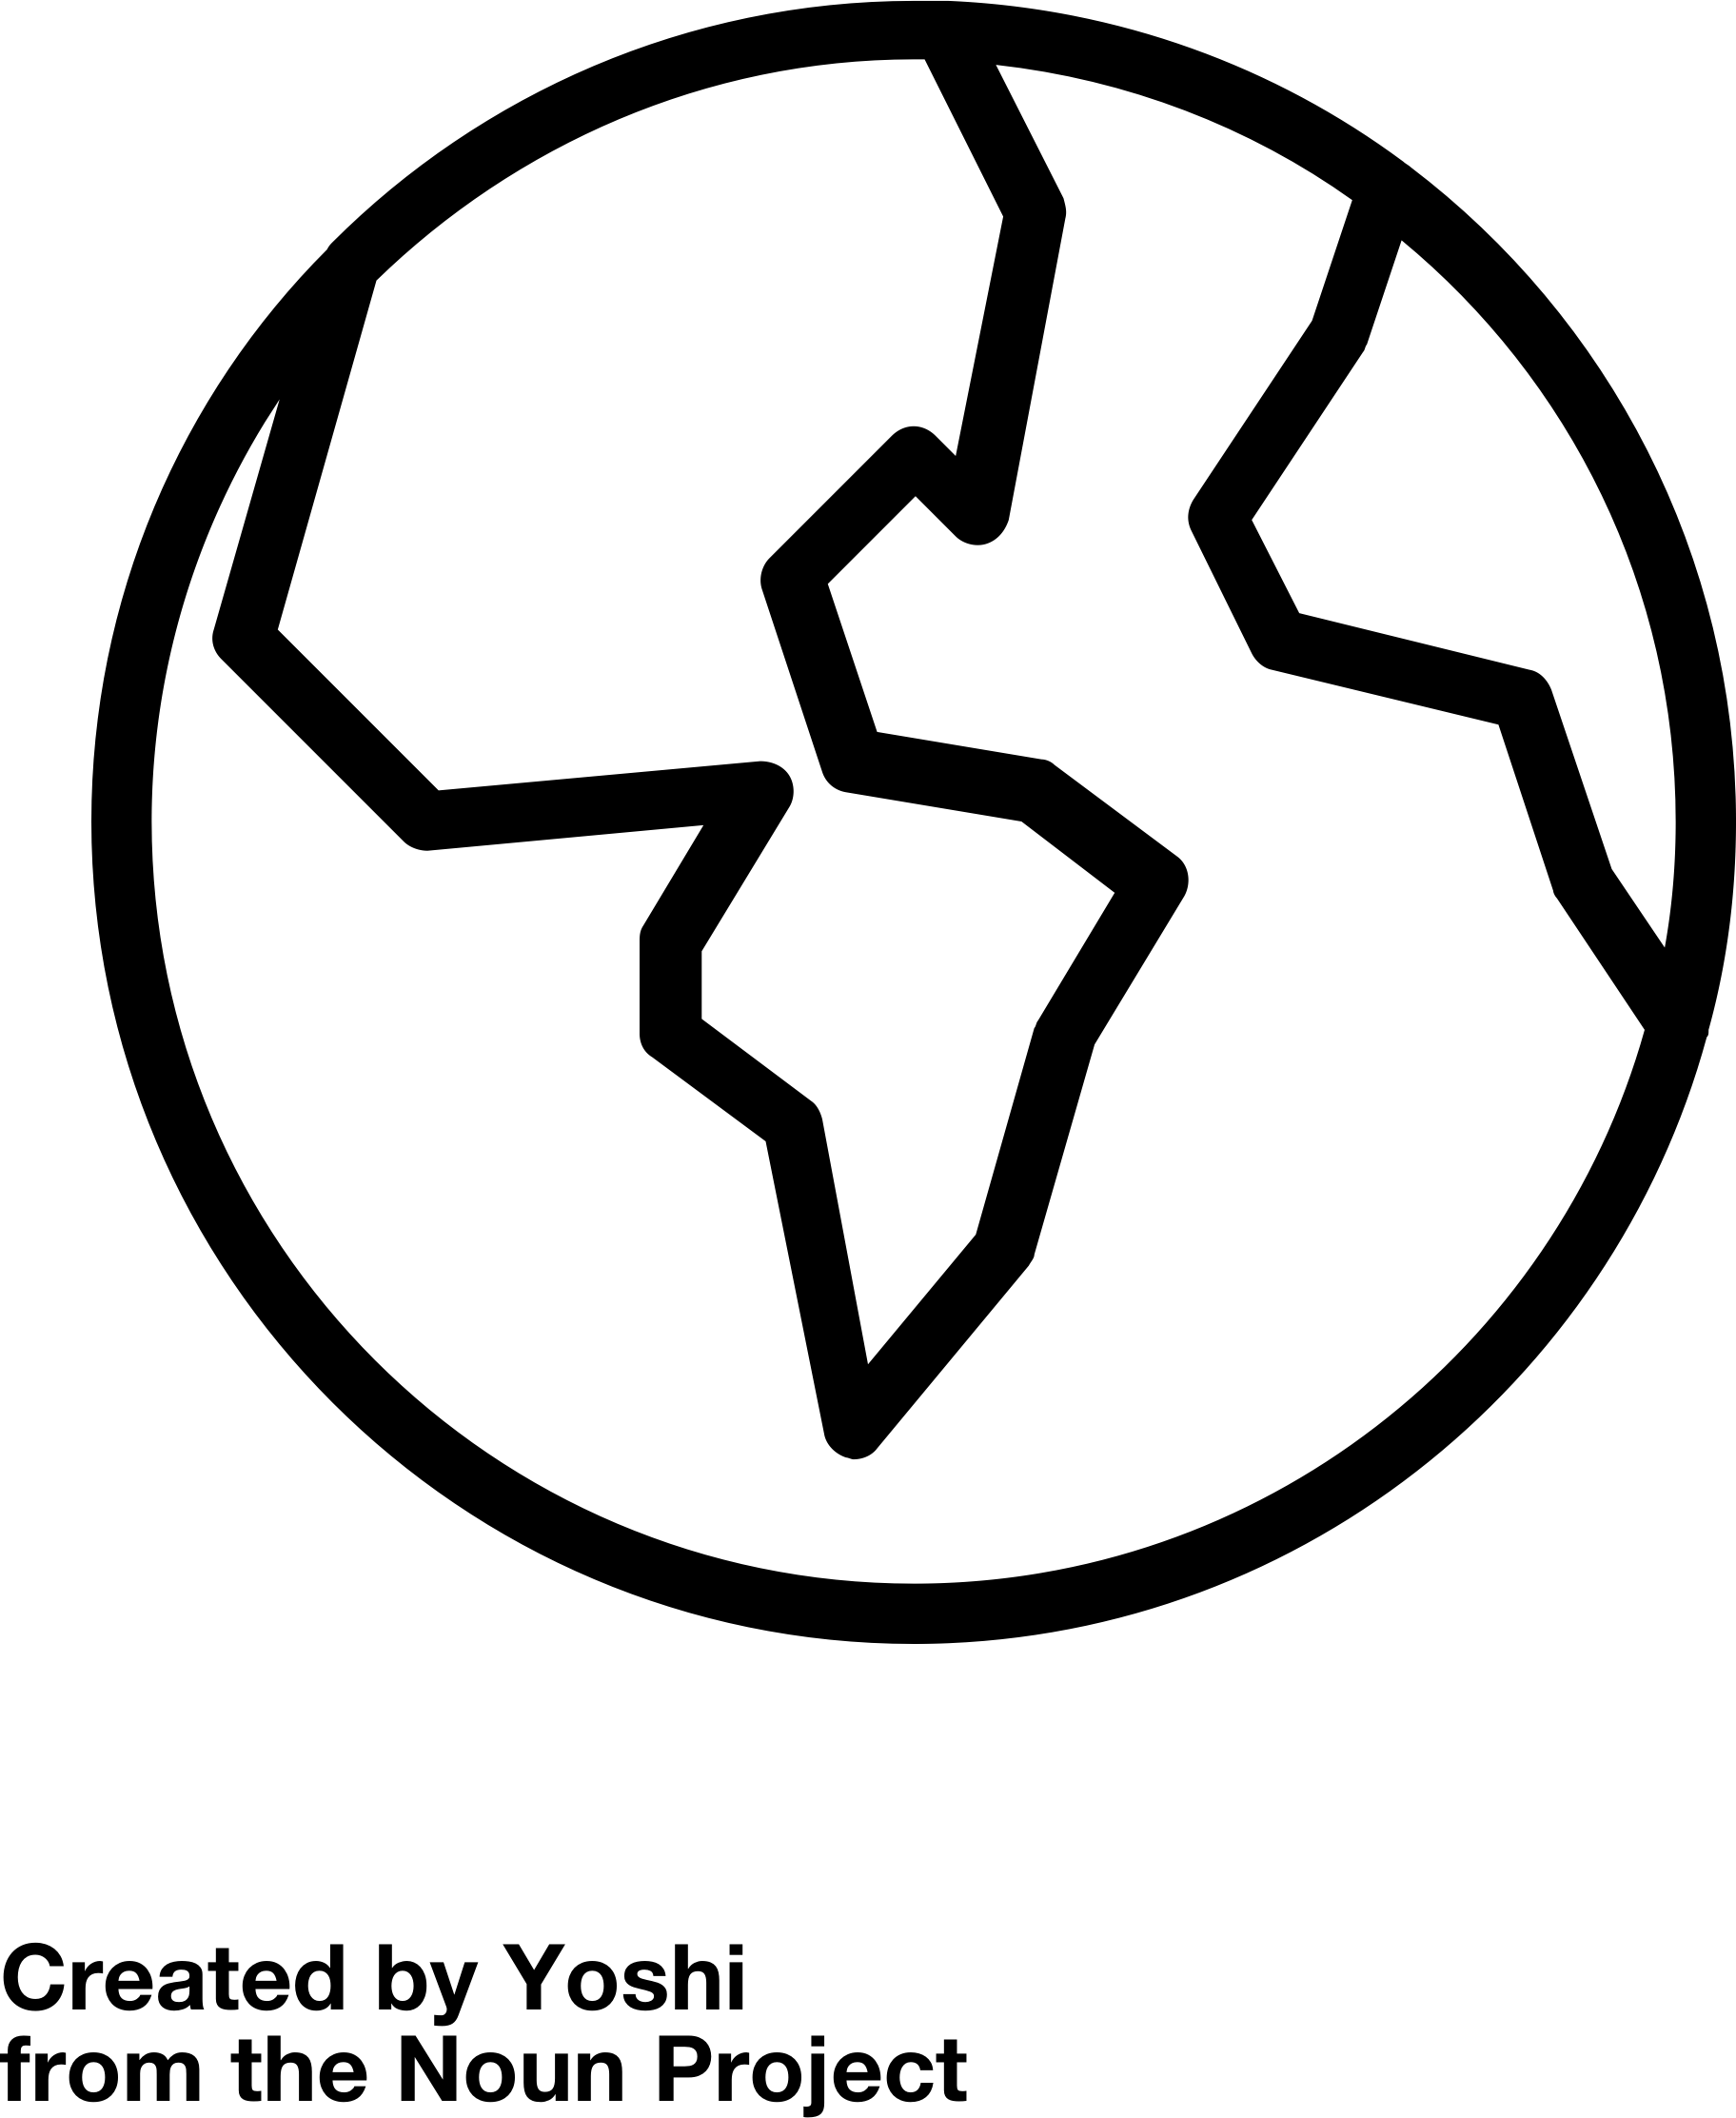 Earth Outline Vector Clipart Image